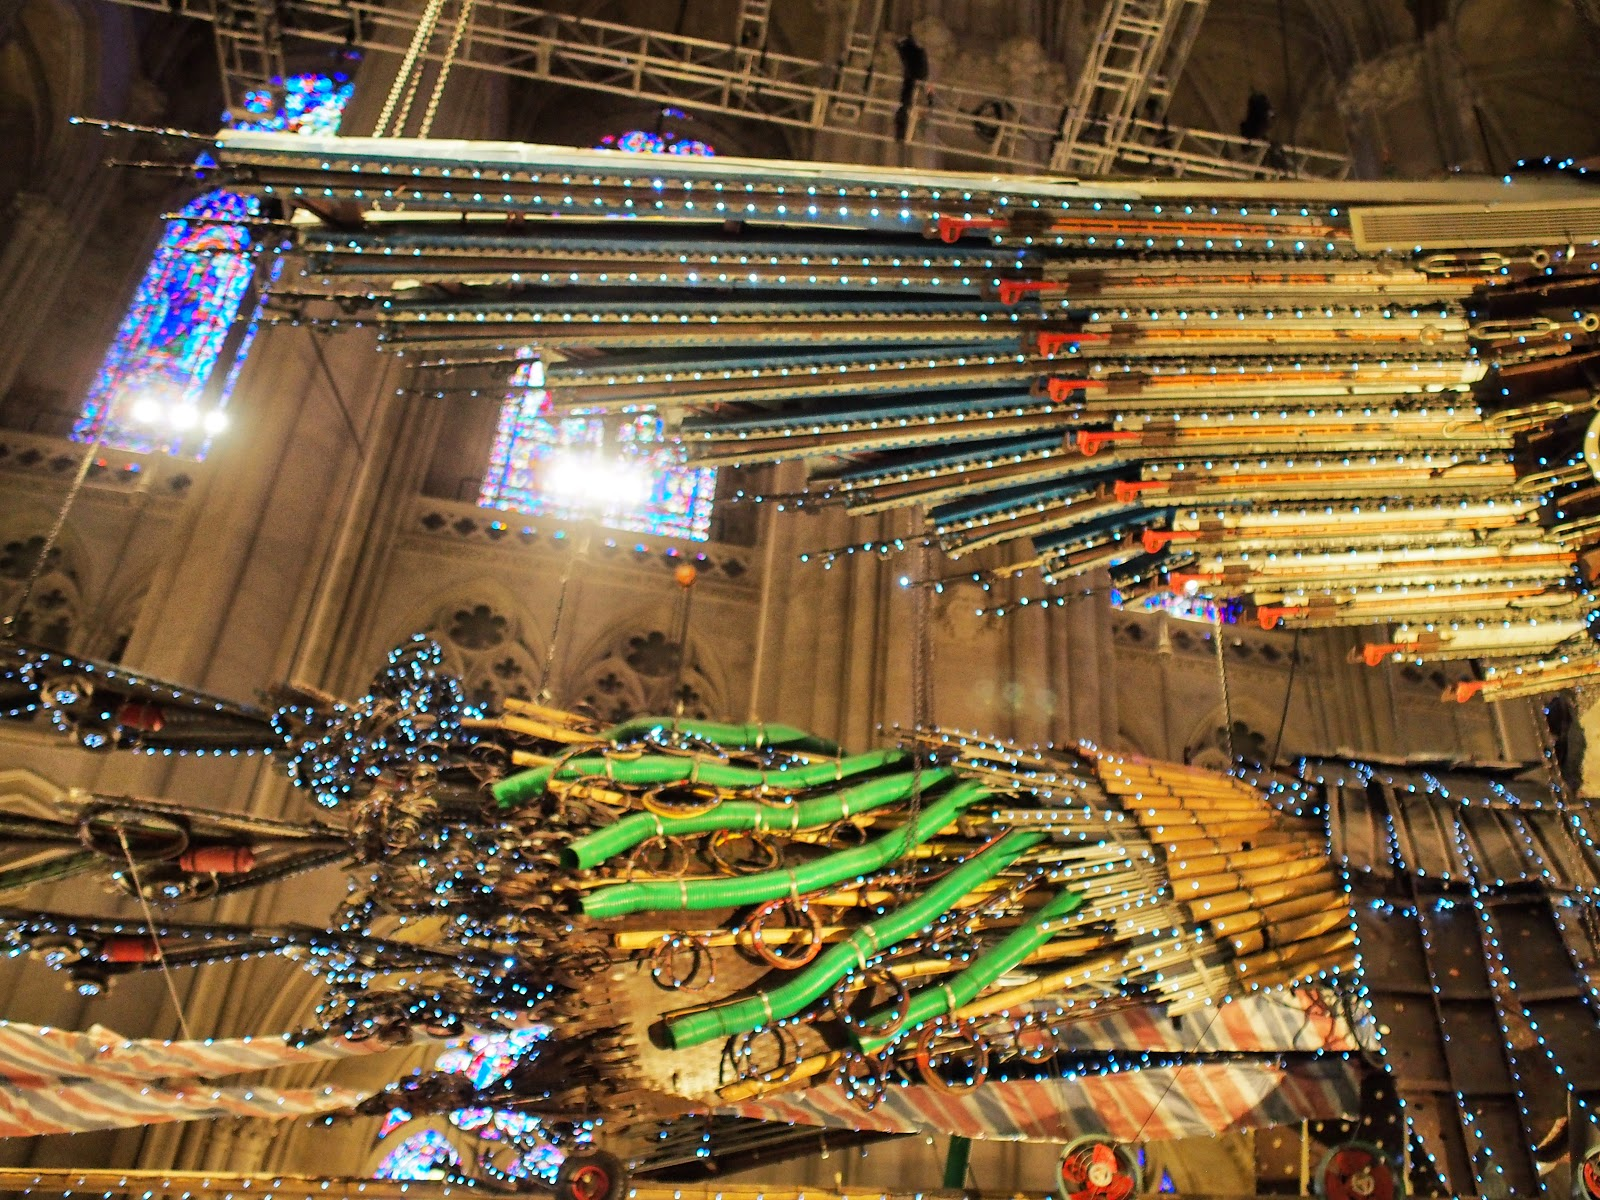 Feathering #feathering #phoenix  #xubing #stjohnthedivinecathedral #art #nyc ©2014 Nancy Lundebjerg